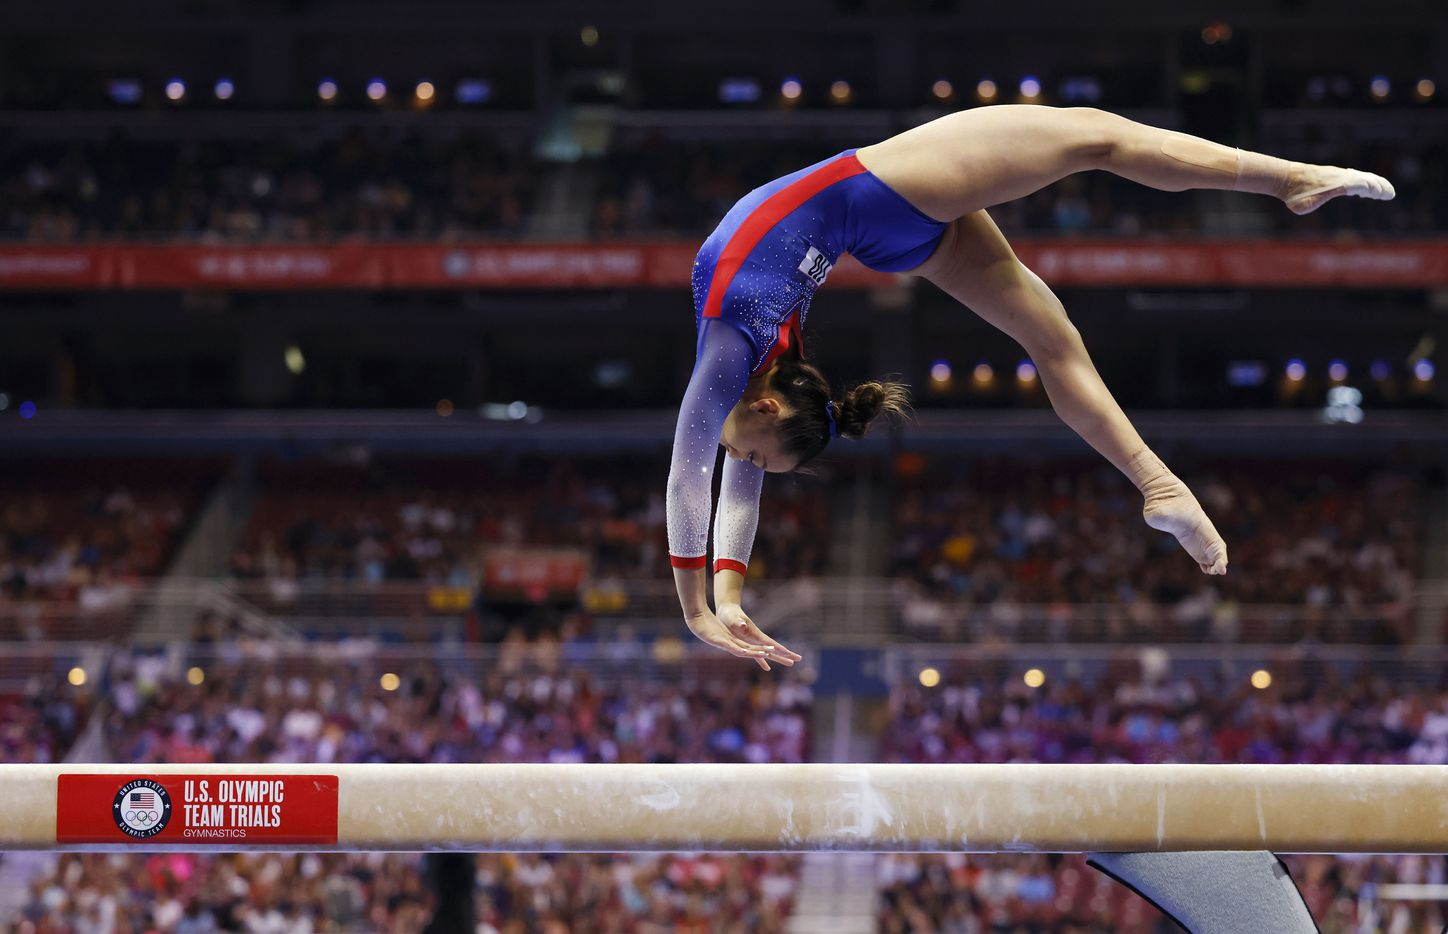 Emma Malabuyo of Texas Dreams competes on the balance beam during day 1 of the women's 2021 U.S. Olympic Trials at America's Center on Friday, June 25, 2021 in St Louis, Missouri.(Vernon Bryant/The Dallas Morning News)